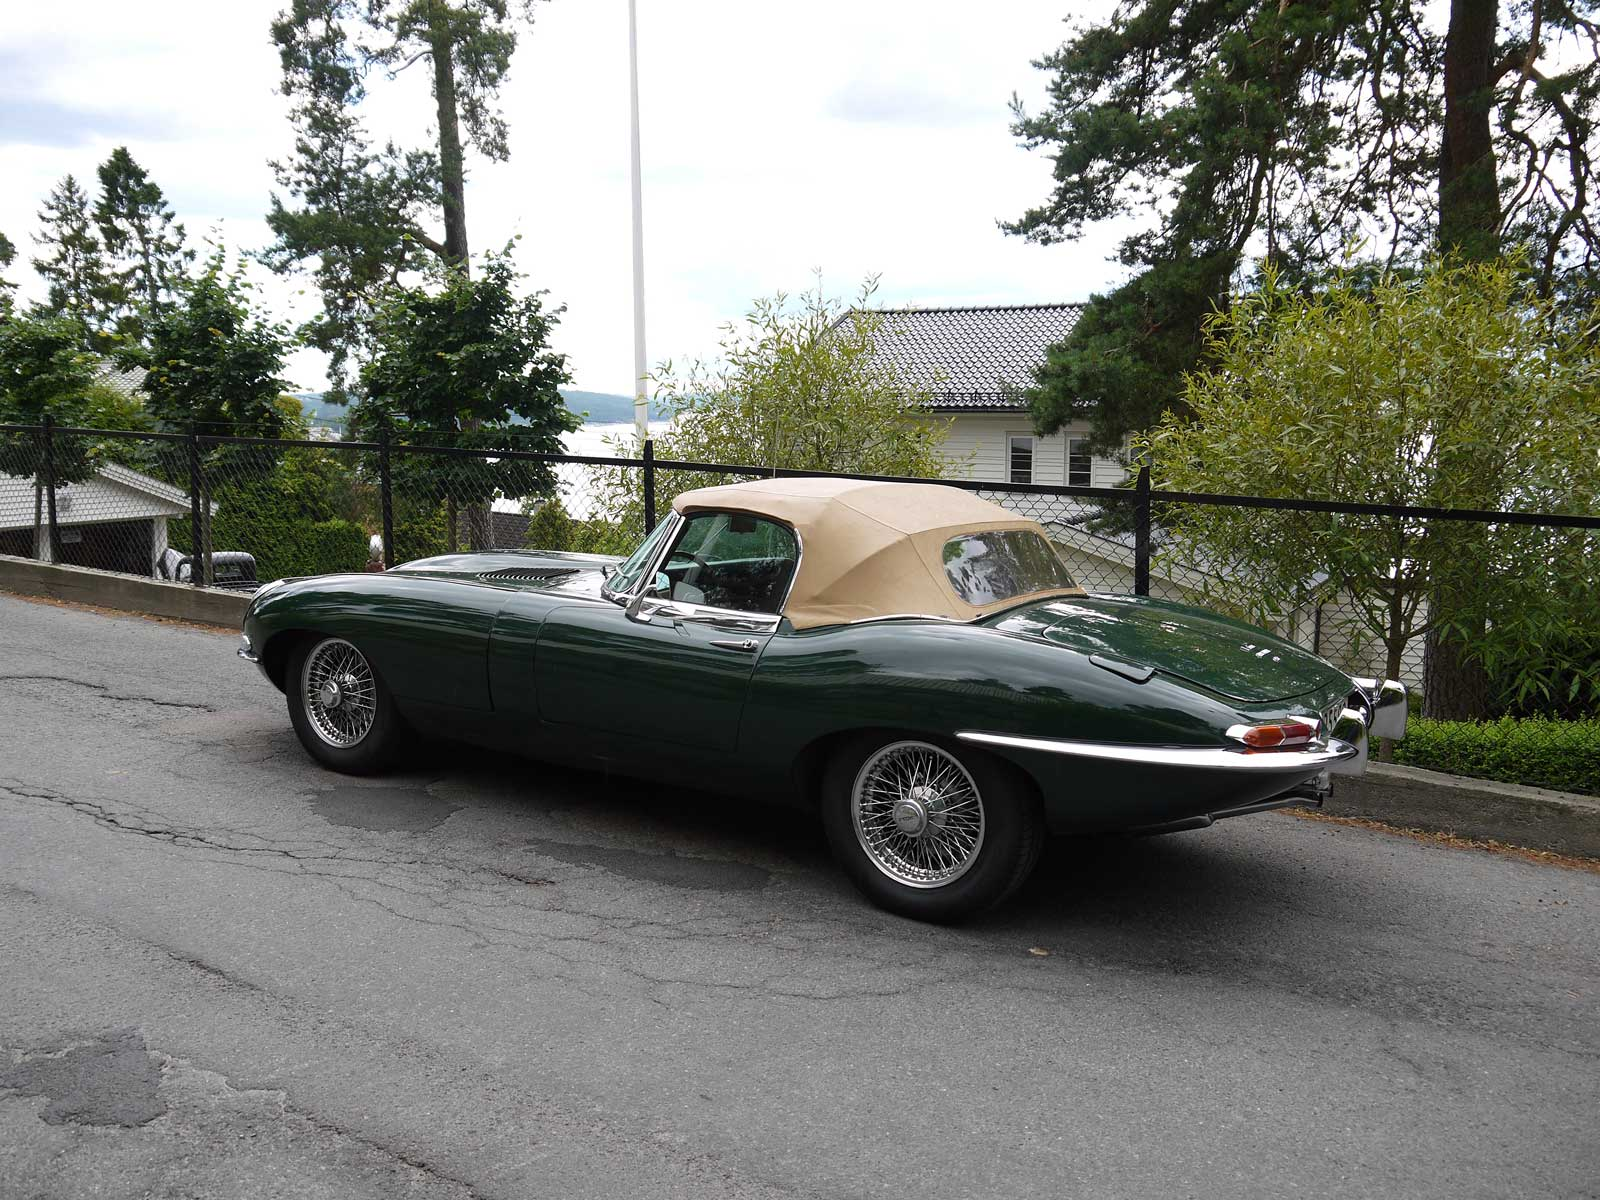 1968 Jaguar E-type 4.2 Roadster Classic car Oslo Norway